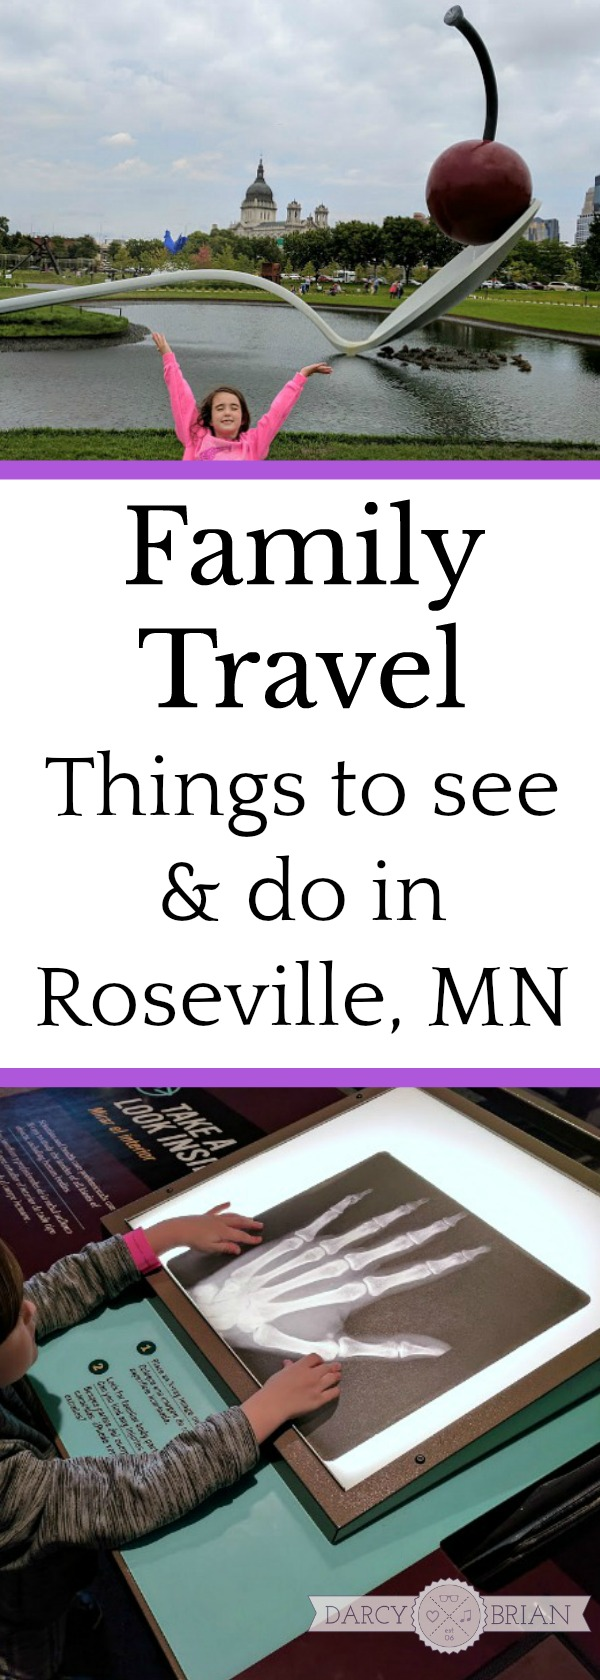 Great ideas for a Twin Cities Itinerary with your family! Planning a trip to Minnesota? Check out these fun things to do, places to eat, and why staying in Roseville is perfect for your family vacation. (ad) #VisitRosevilleMN #OnlyinMN #MySaintPaul #familytravel #roadtrip #midwest #midwesttravel #Minnesota #kidsactivities #familyactivities #itinerary